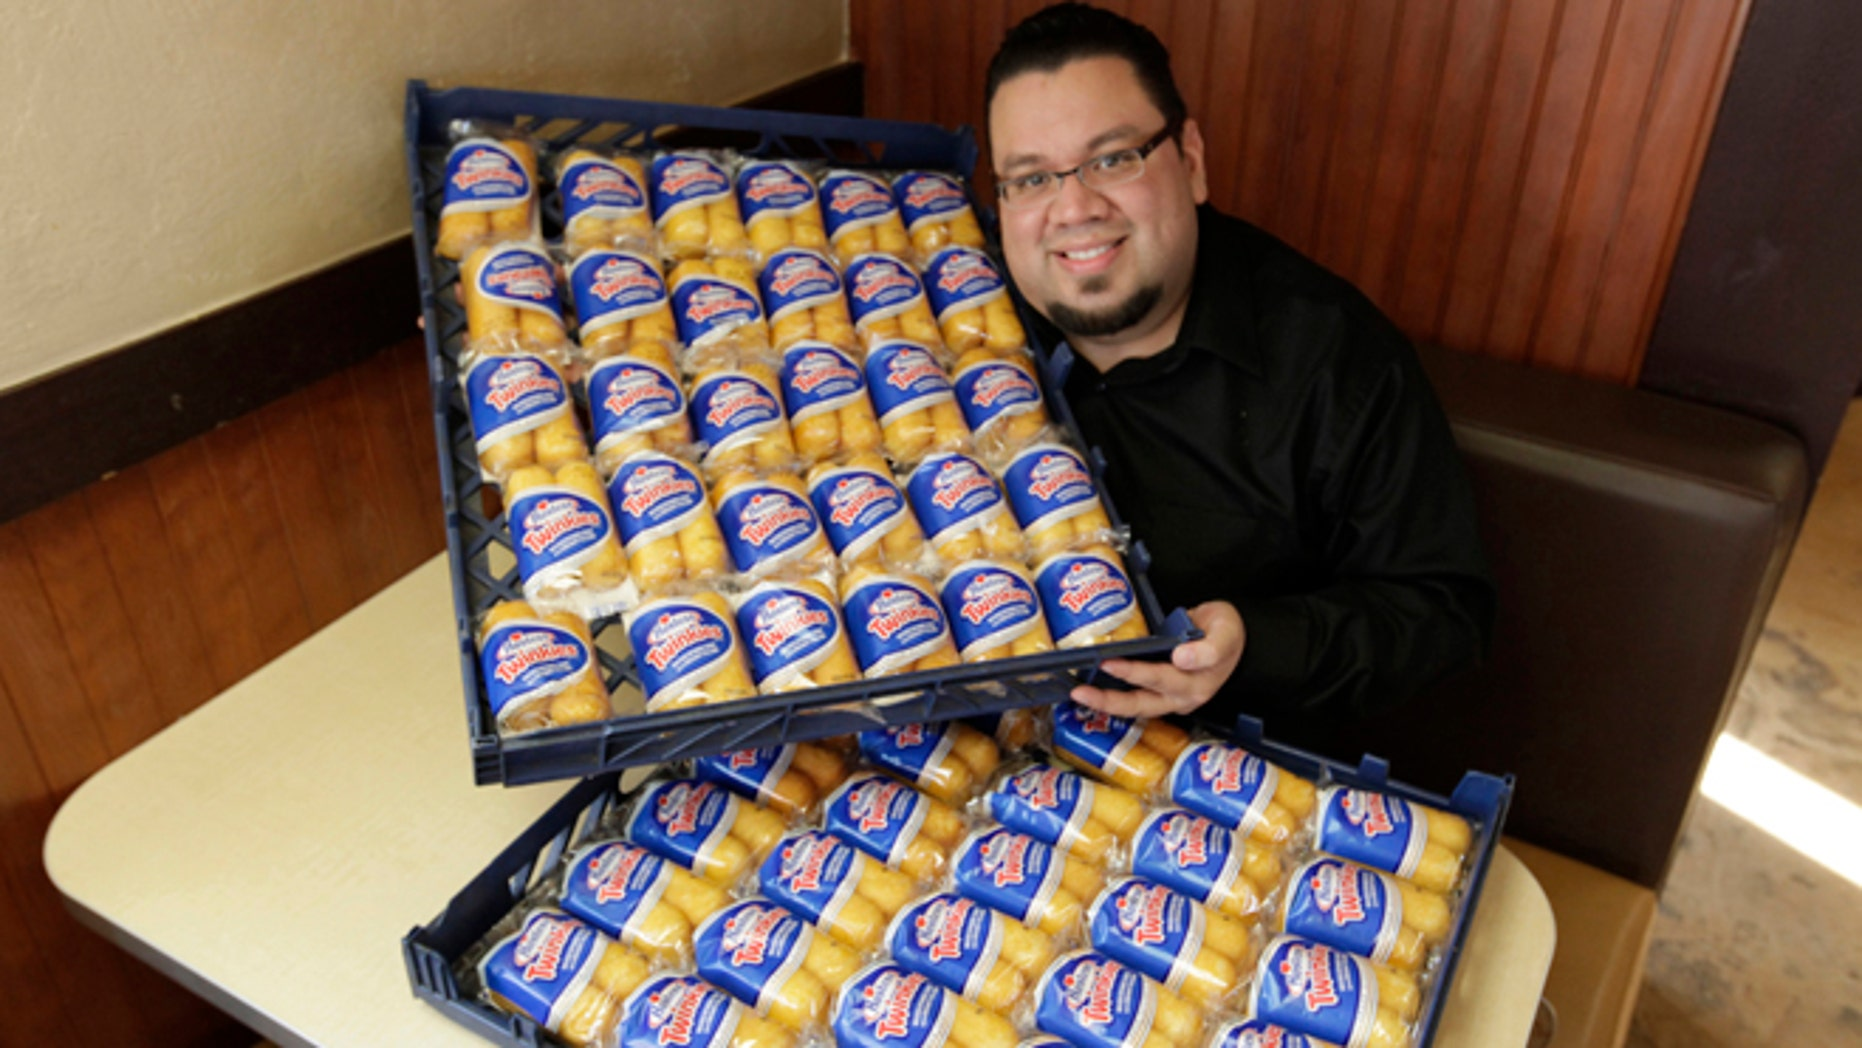 Dec. 5, 2012: Andres DeLeon of Baby's Steak & Lemonade in Orland Park, Ill, poses with a large supply of Hostess Twinkies at his restaurant.